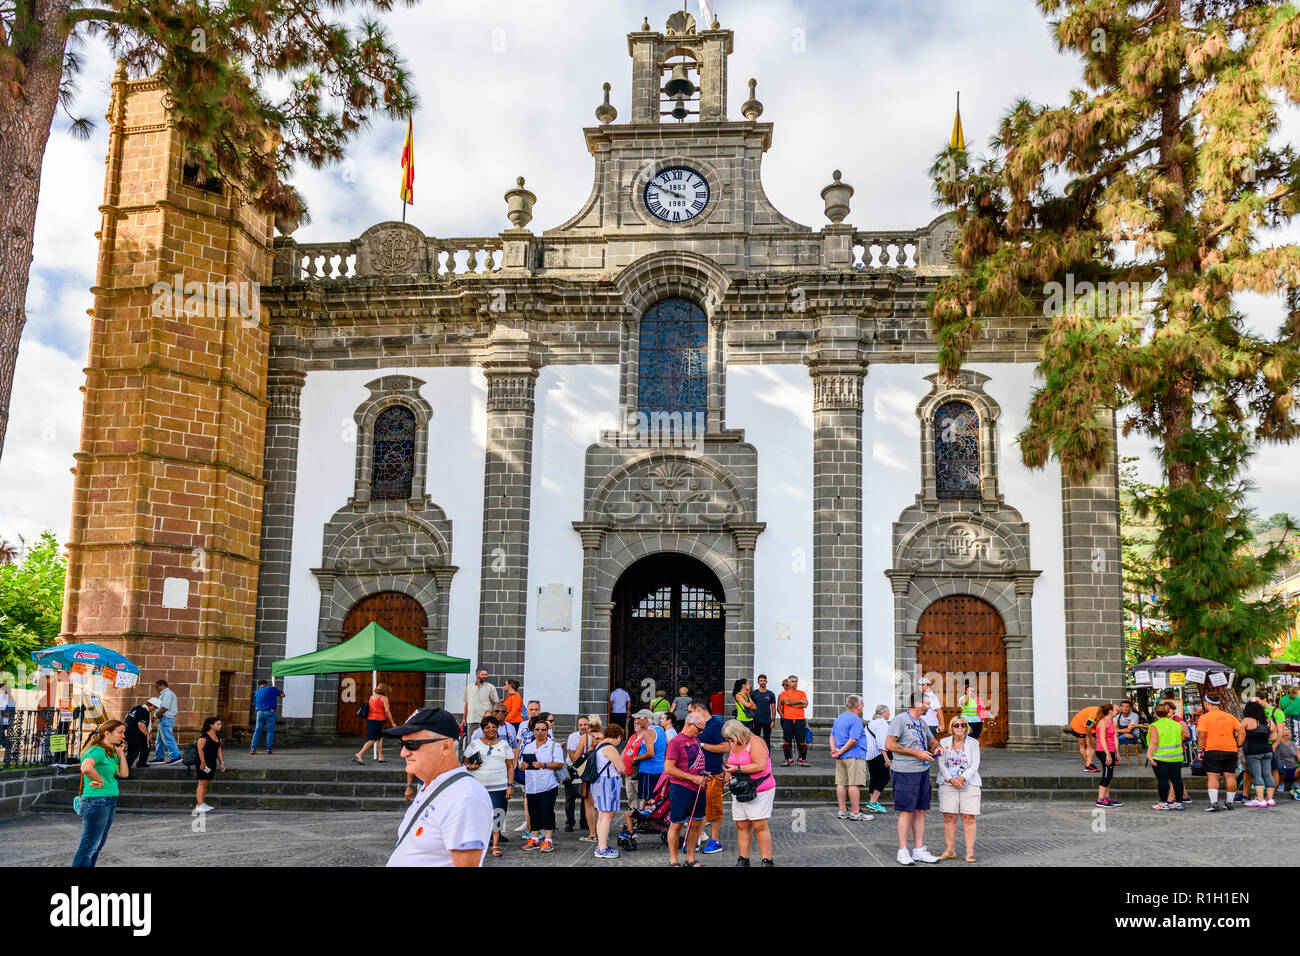 Groups of tourists outside the Basilica Nuestra Señora del Pino. an 18th century cathedral in Teror,  Gran Canaria, canary Islands - Stock Image